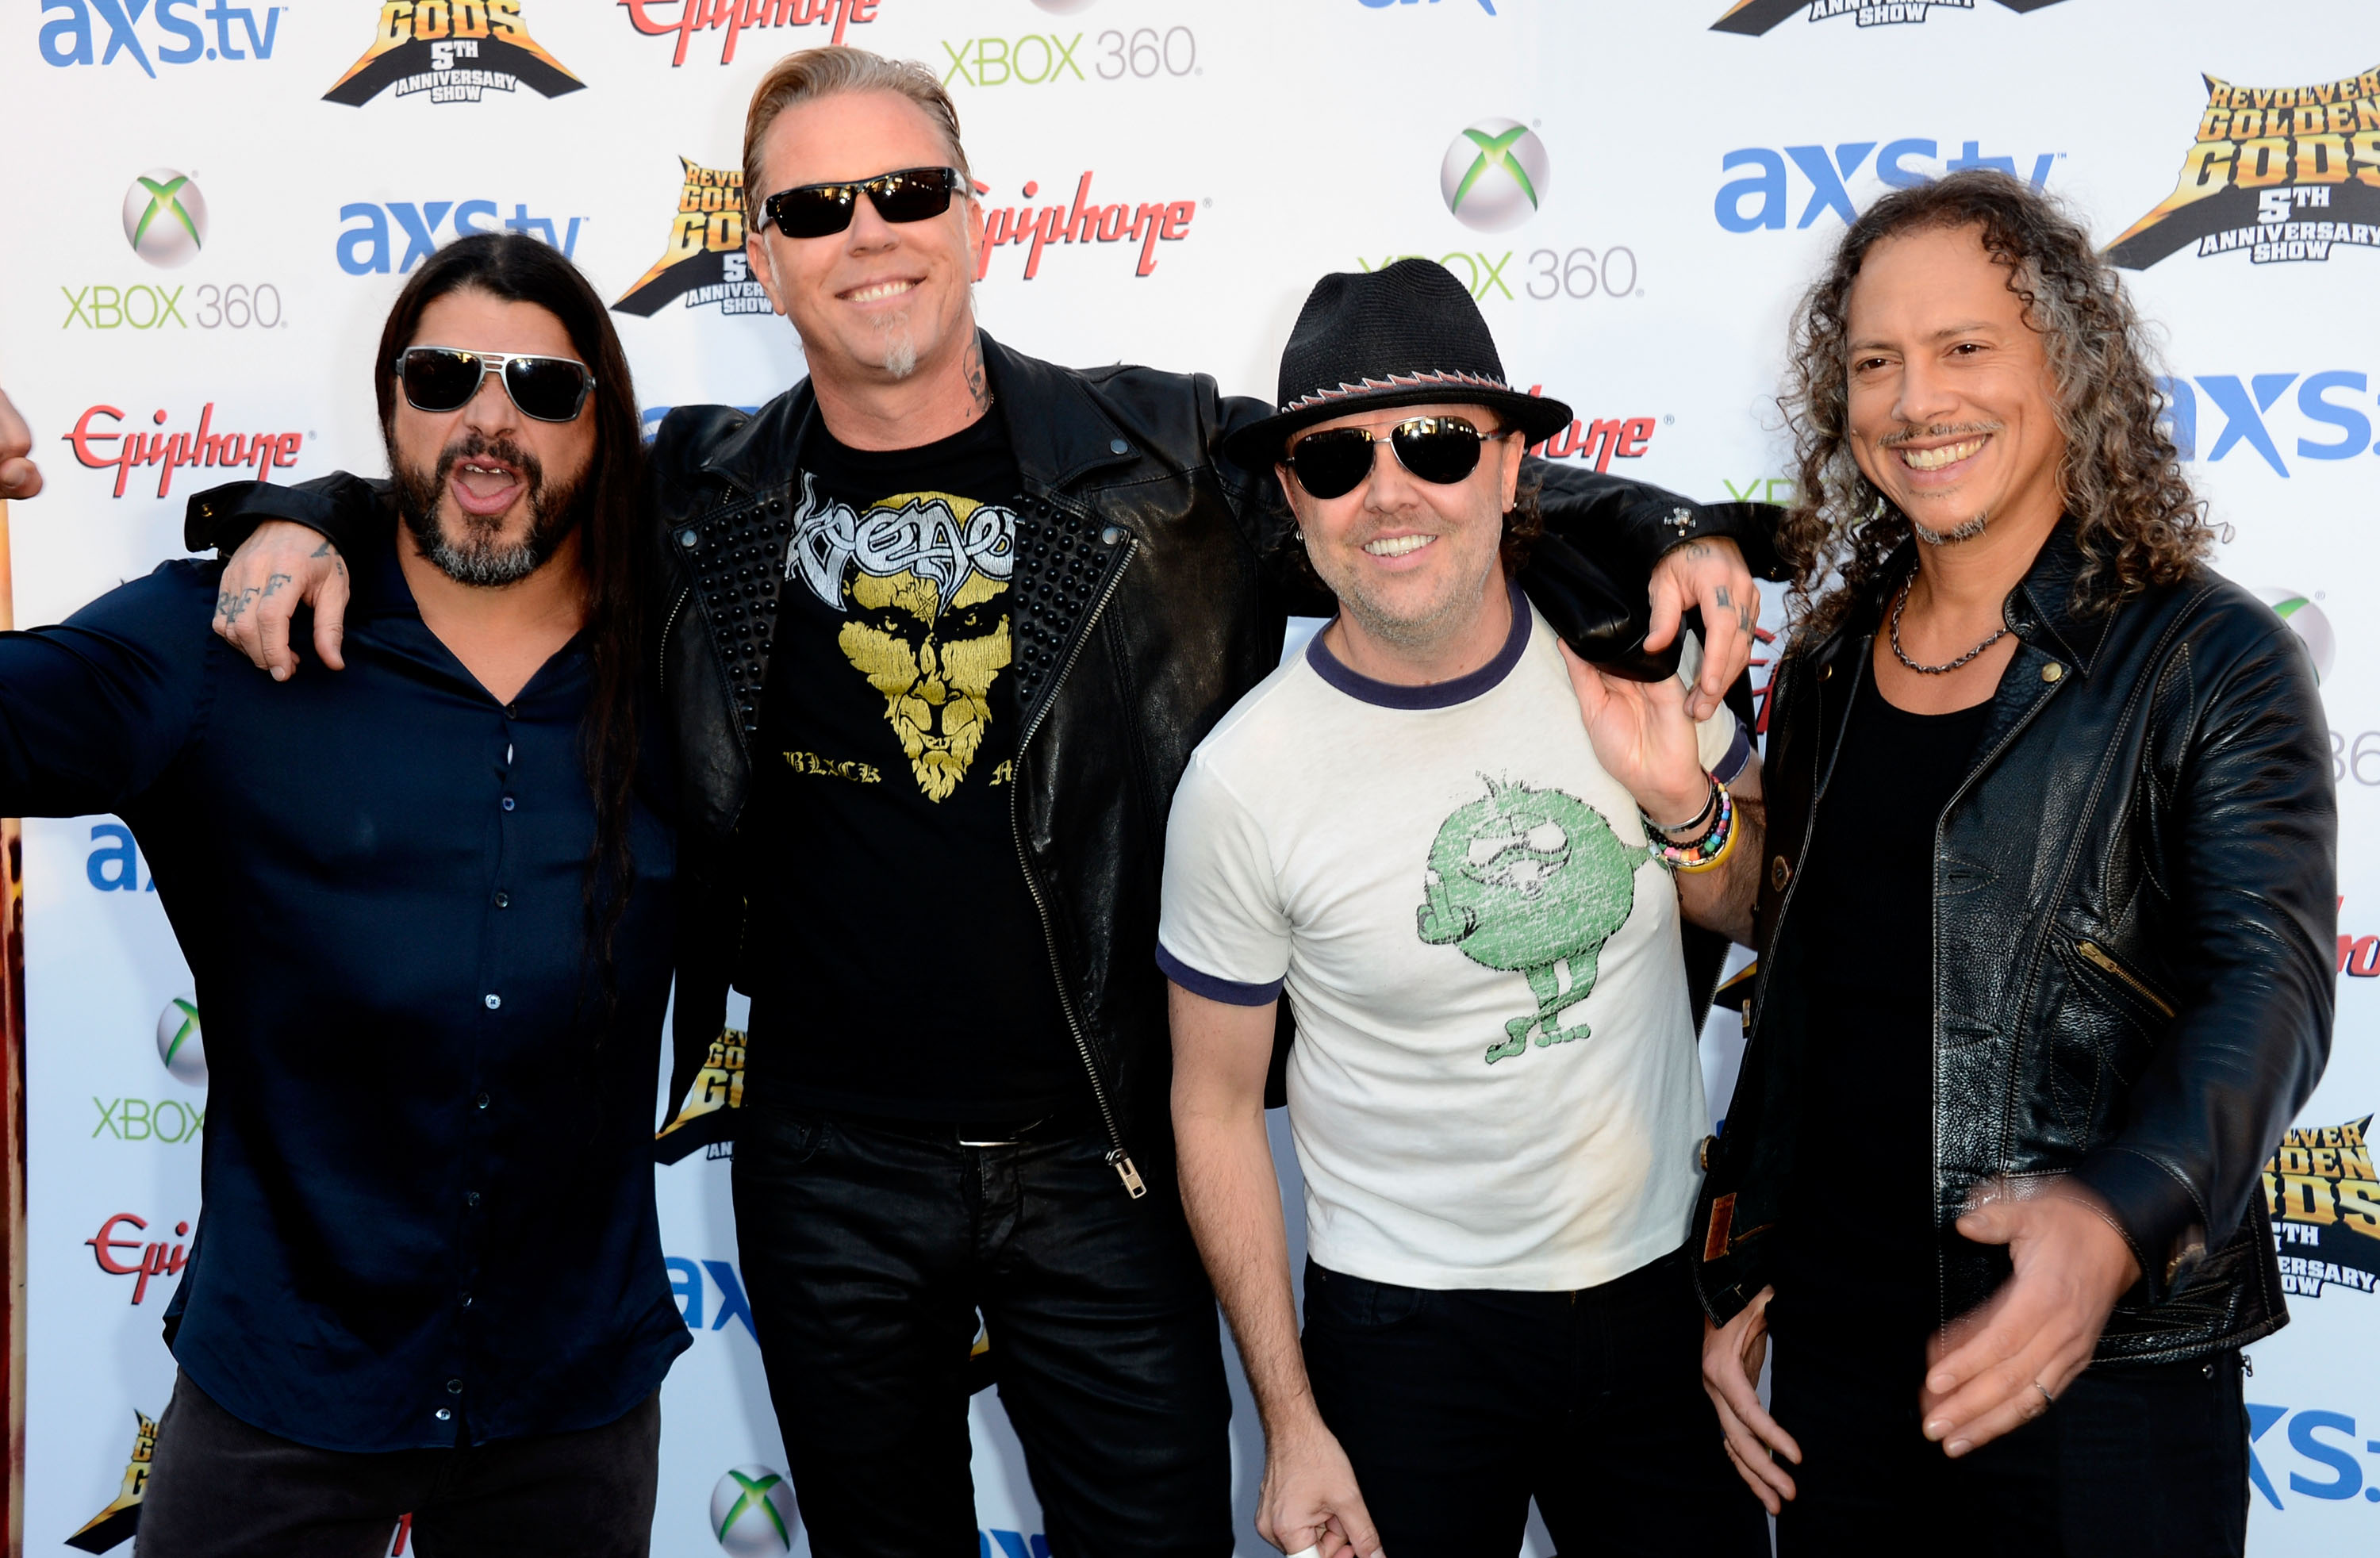 LOS ANGELES, CA - MAY 02:  Metallica (L-R) Robert Trujillo, James Hetfield, Lars Ulrich, Kirk Hammett arrive at the 5th Annual Revolver Golden Gods Award Show  at Club Nokia on May 2, 2013 in Los Angeles, California.  (Photo by Frazer Harrison/Getty Images)